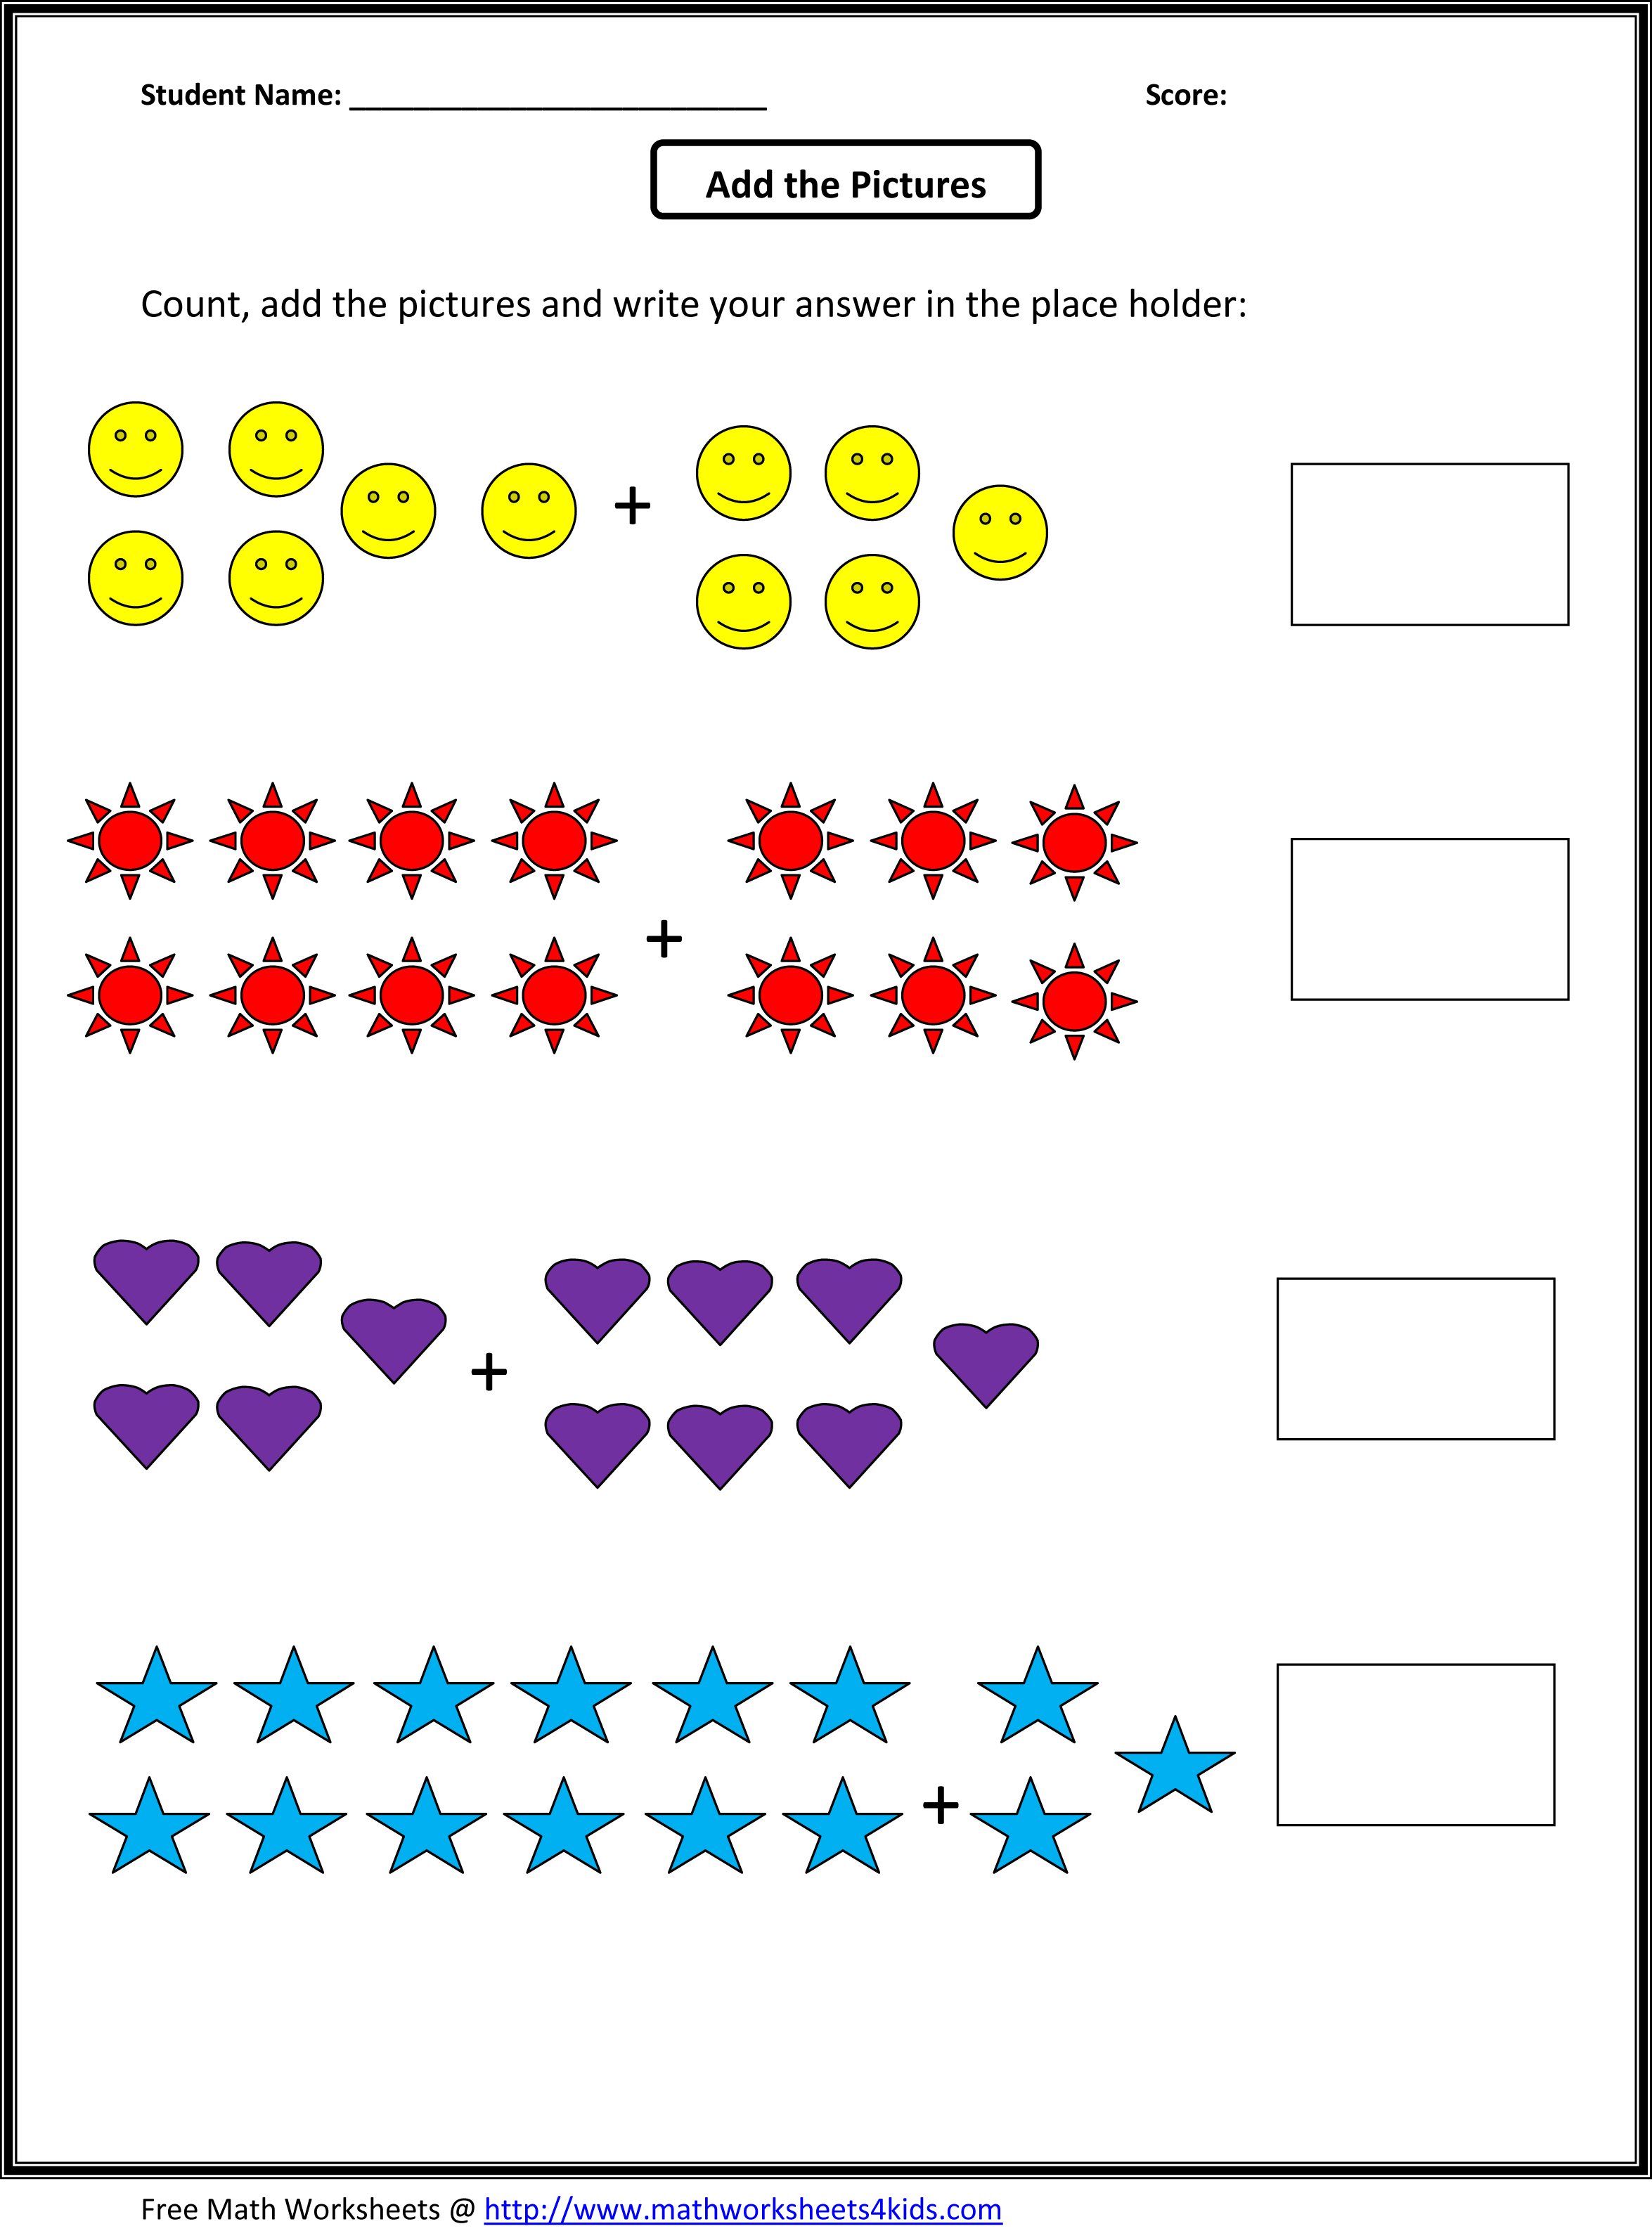 Weirdmailus  Pretty Grade  Maths Worksheet  Reocurent With Hot Math Worksheets For St Grade Free  Reocurent With Archaic Circumcenter Worksheet Also Business Worksheets In Addition Graphing In Standard Form Worksheet And Multiplying And Dividing Negative Numbers Worksheet As Well As Kinematics Equations Worksheet Additionally Fourth Grade Fraction Worksheets From Reocurentcom With Weirdmailus  Hot Grade  Maths Worksheet  Reocurent With Archaic Math Worksheets For St Grade Free  Reocurent And Pretty Circumcenter Worksheet Also Business Worksheets In Addition Graphing In Standard Form Worksheet From Reocurentcom